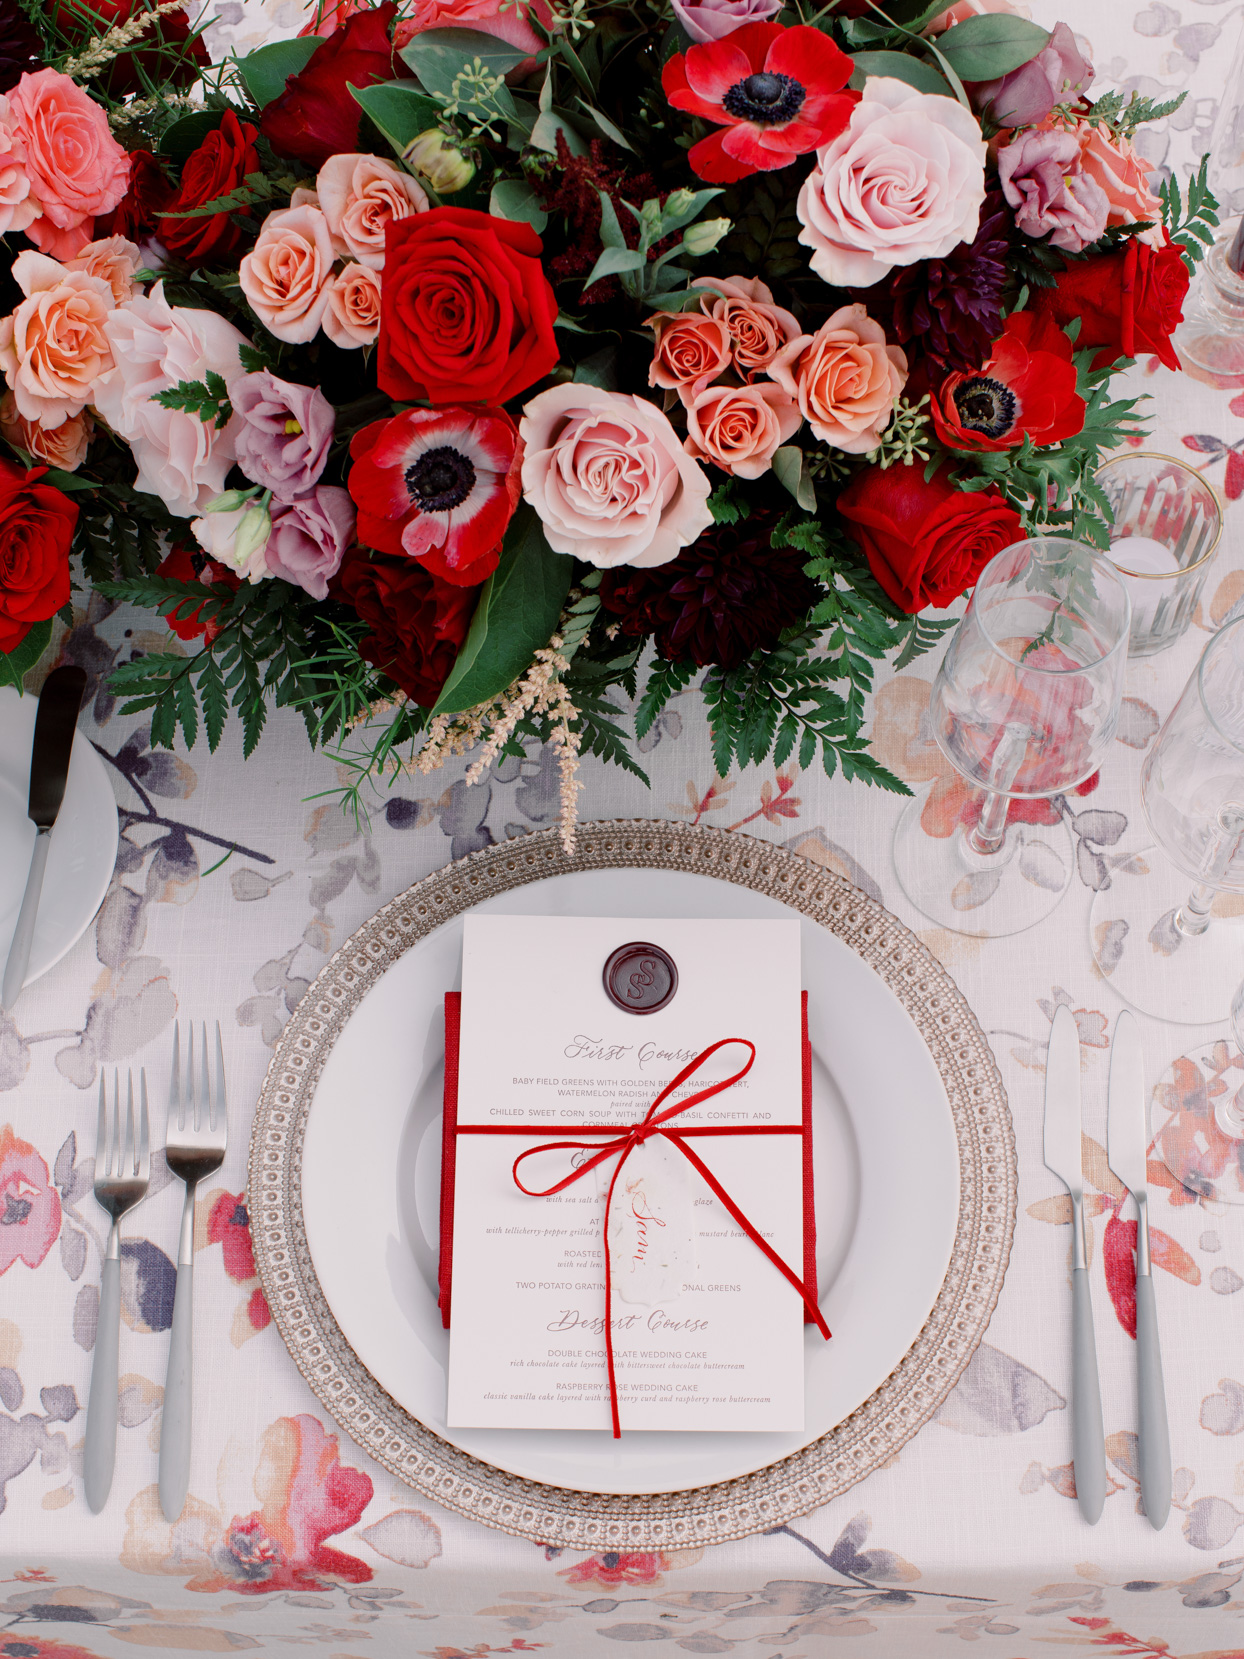 wedding place setting with red and white flowers